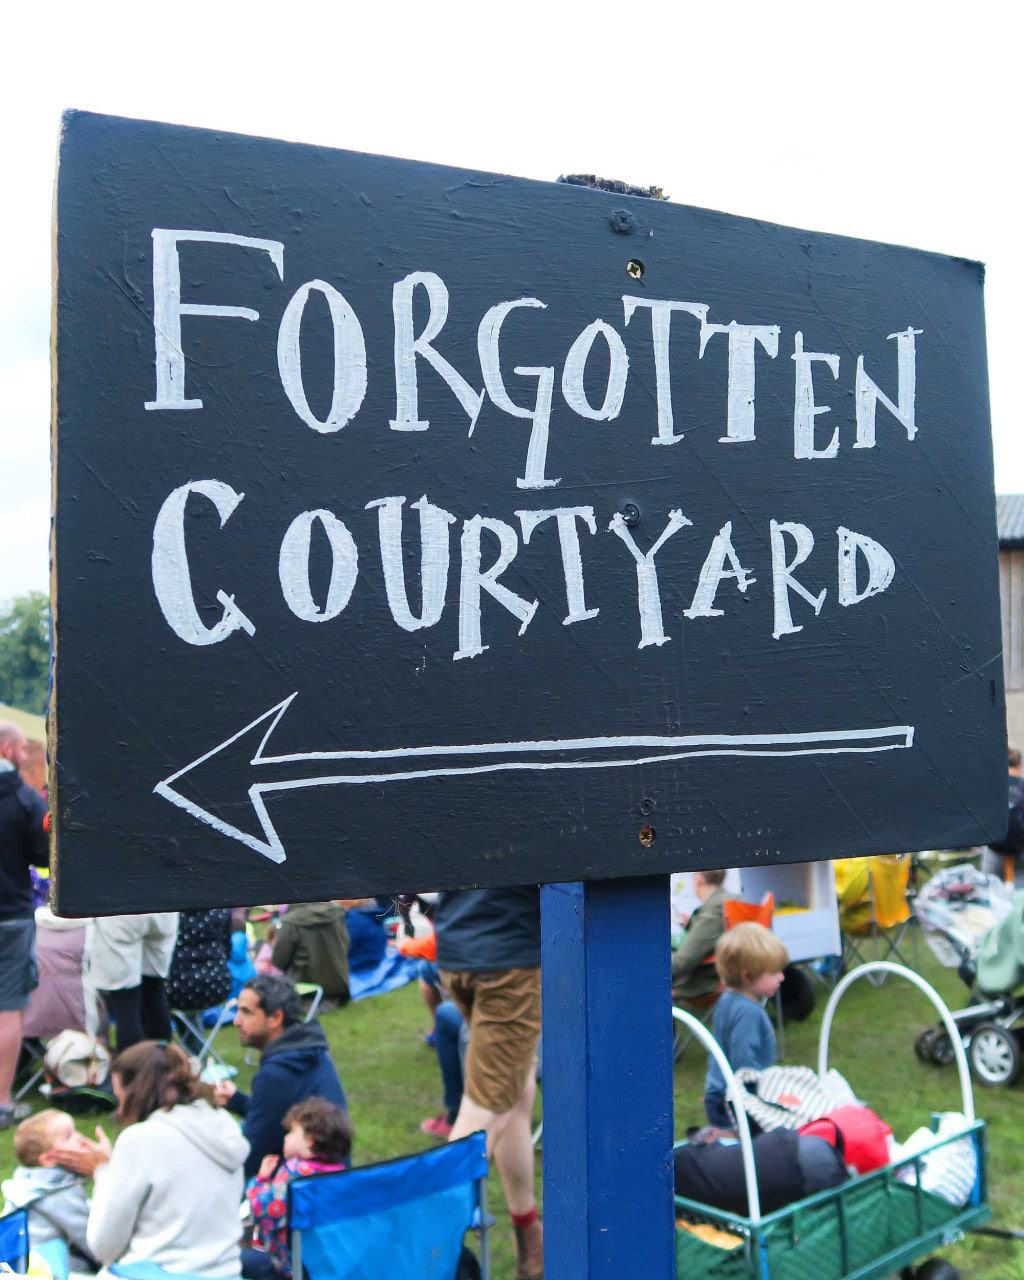 The forgotten courtyard at Just So festival